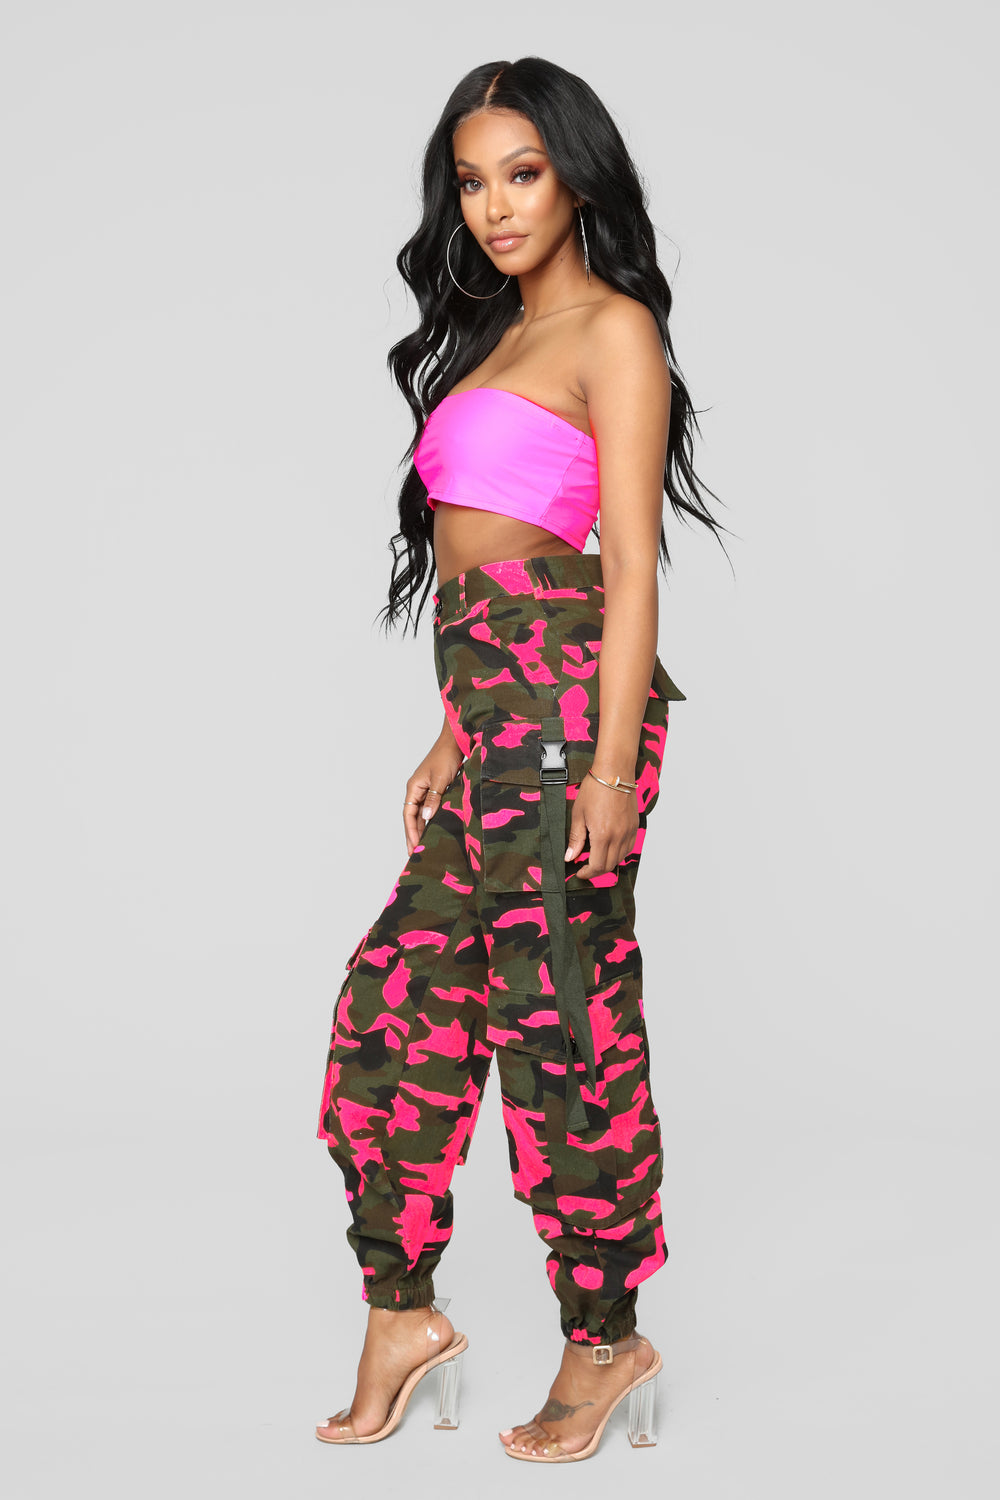 Neomie Cargo Joggers - Pink